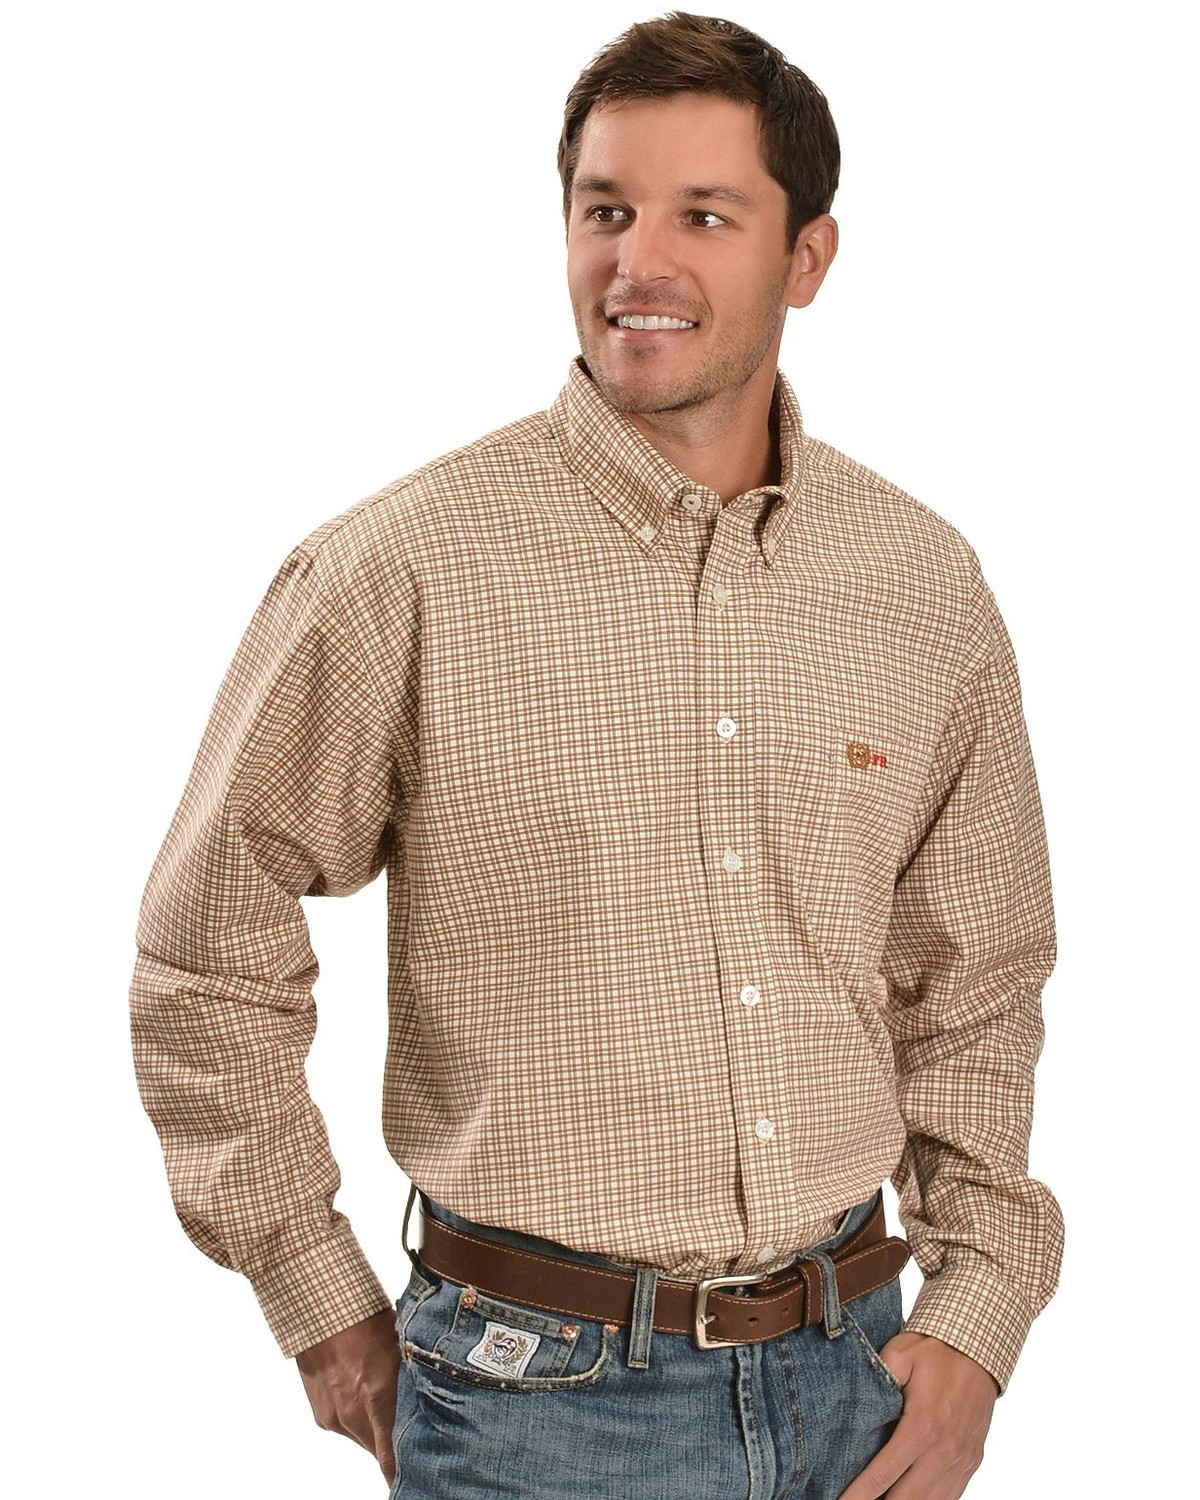 Cinch flame resistant brown plaid work shirt sheplers for Cinch flame resistant shirts